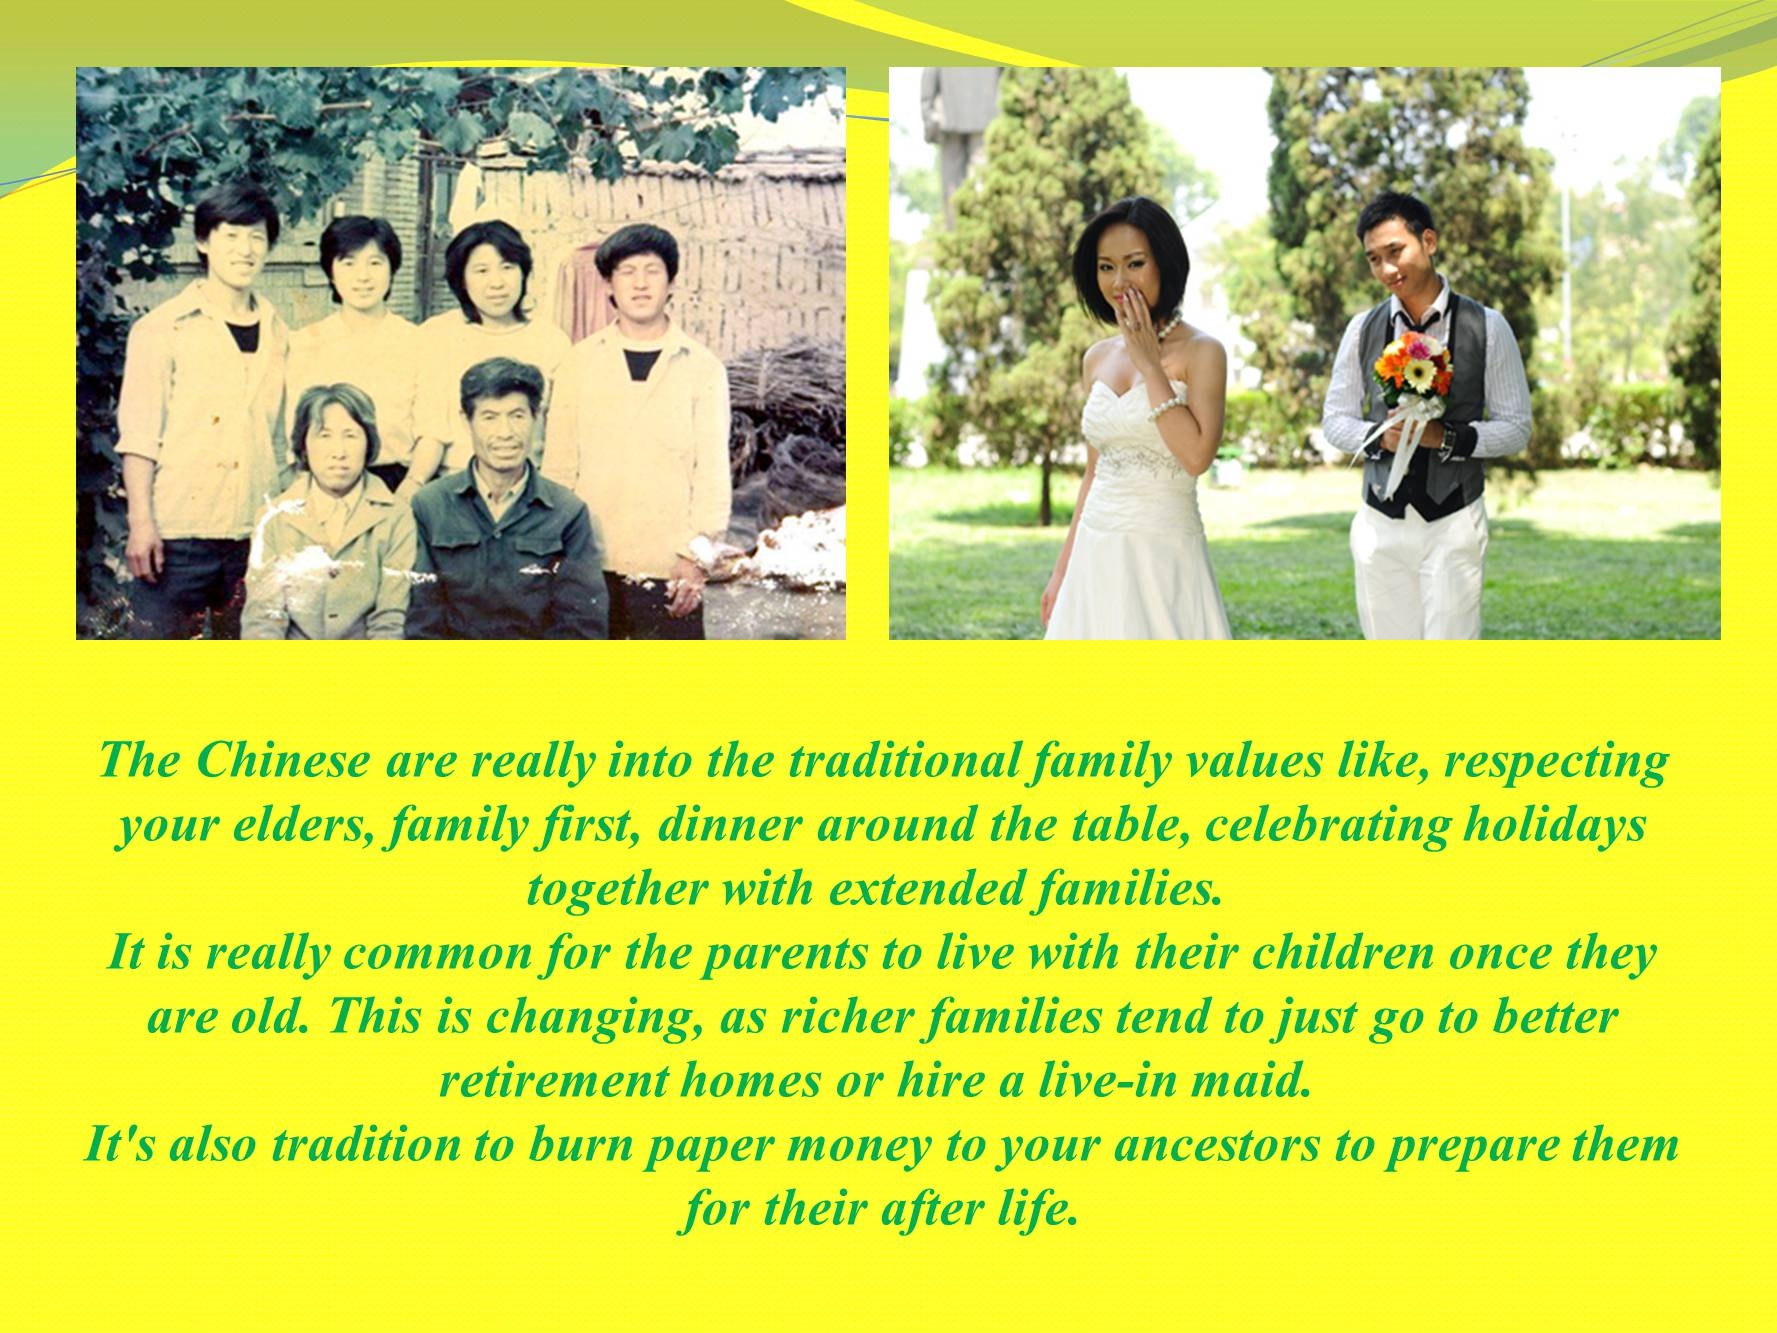 traditional family values and they changing